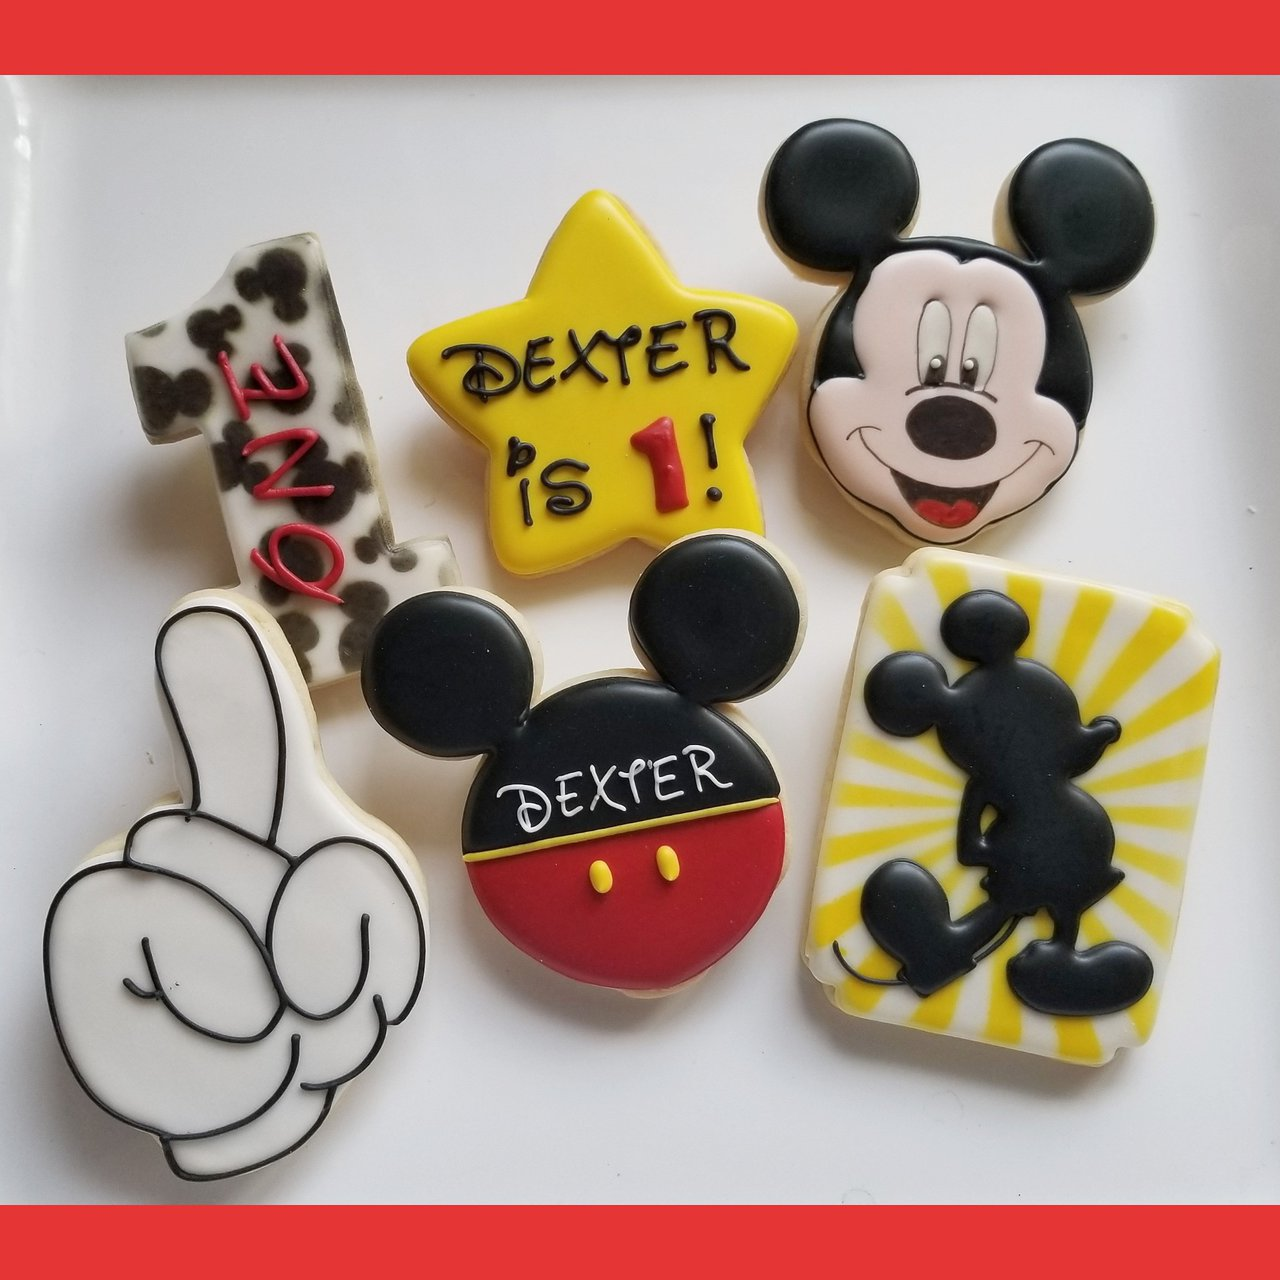 Custom Cookies for your special event! photo mickey mouse jill 1st birthday first.jpg